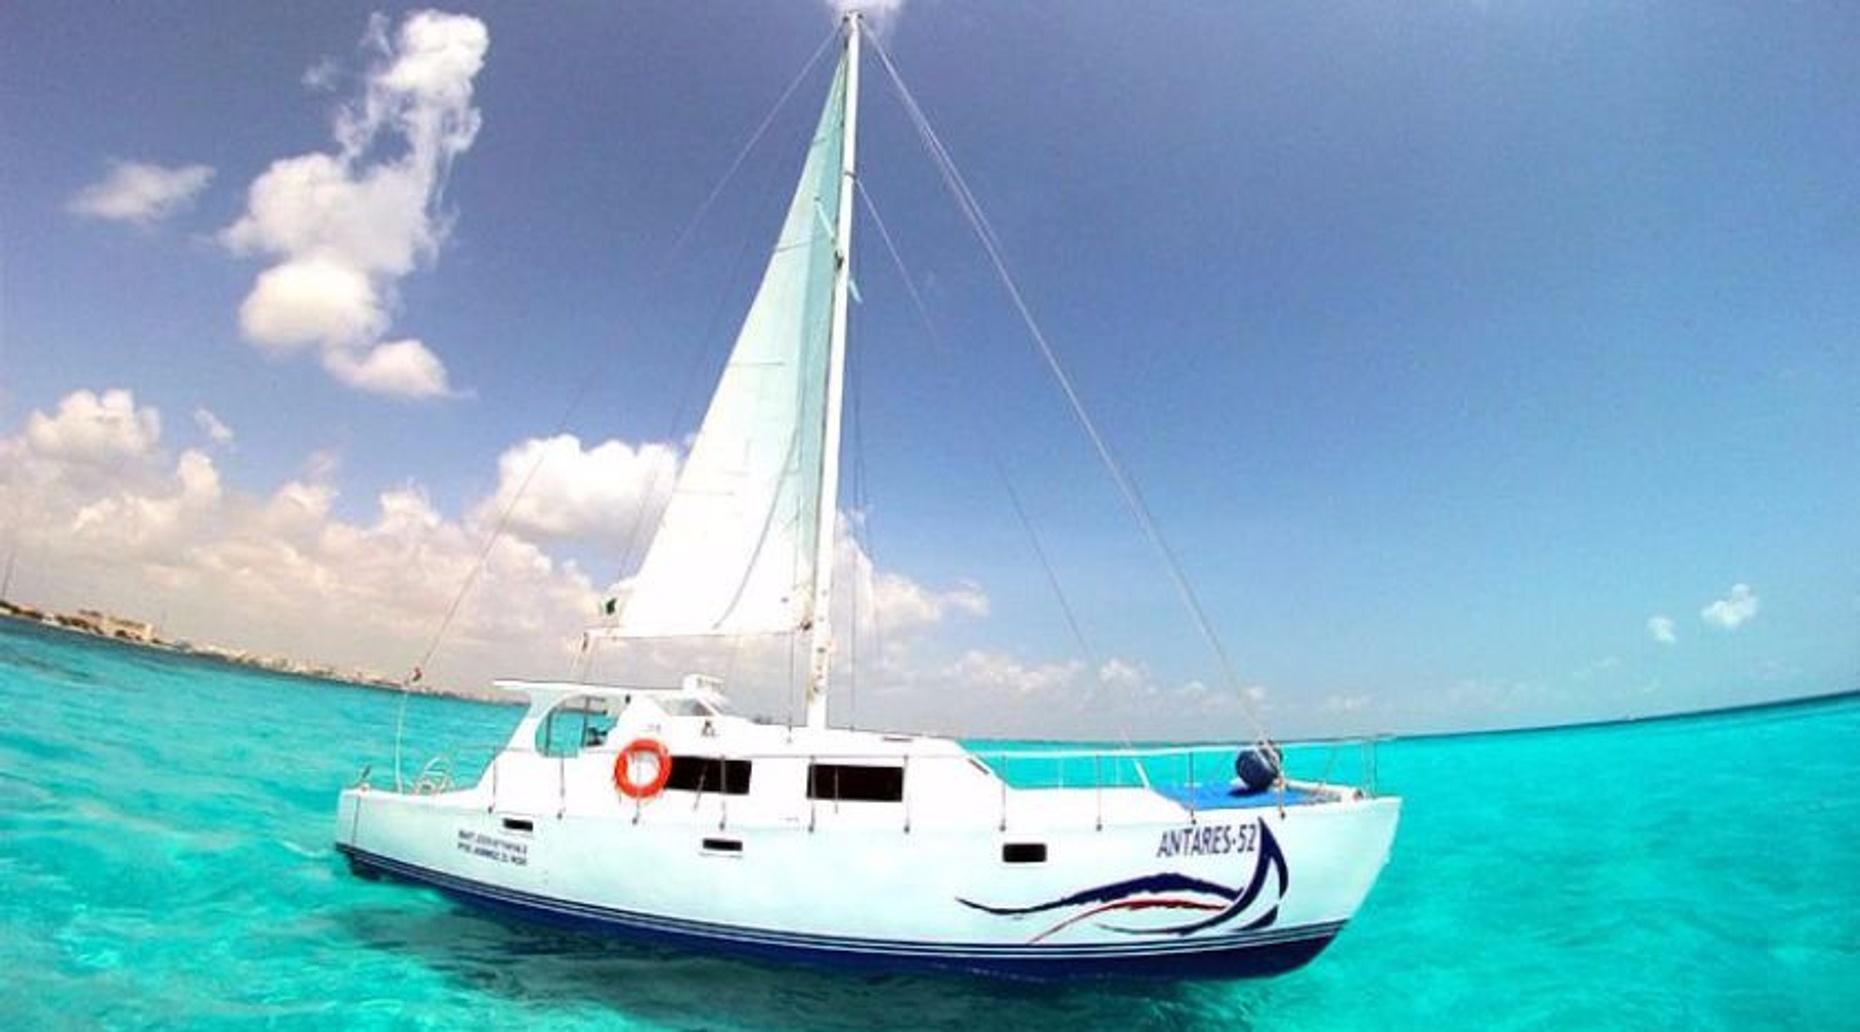 Full-Day Sailing Trip on the Antares 52 to Isla Mujeres